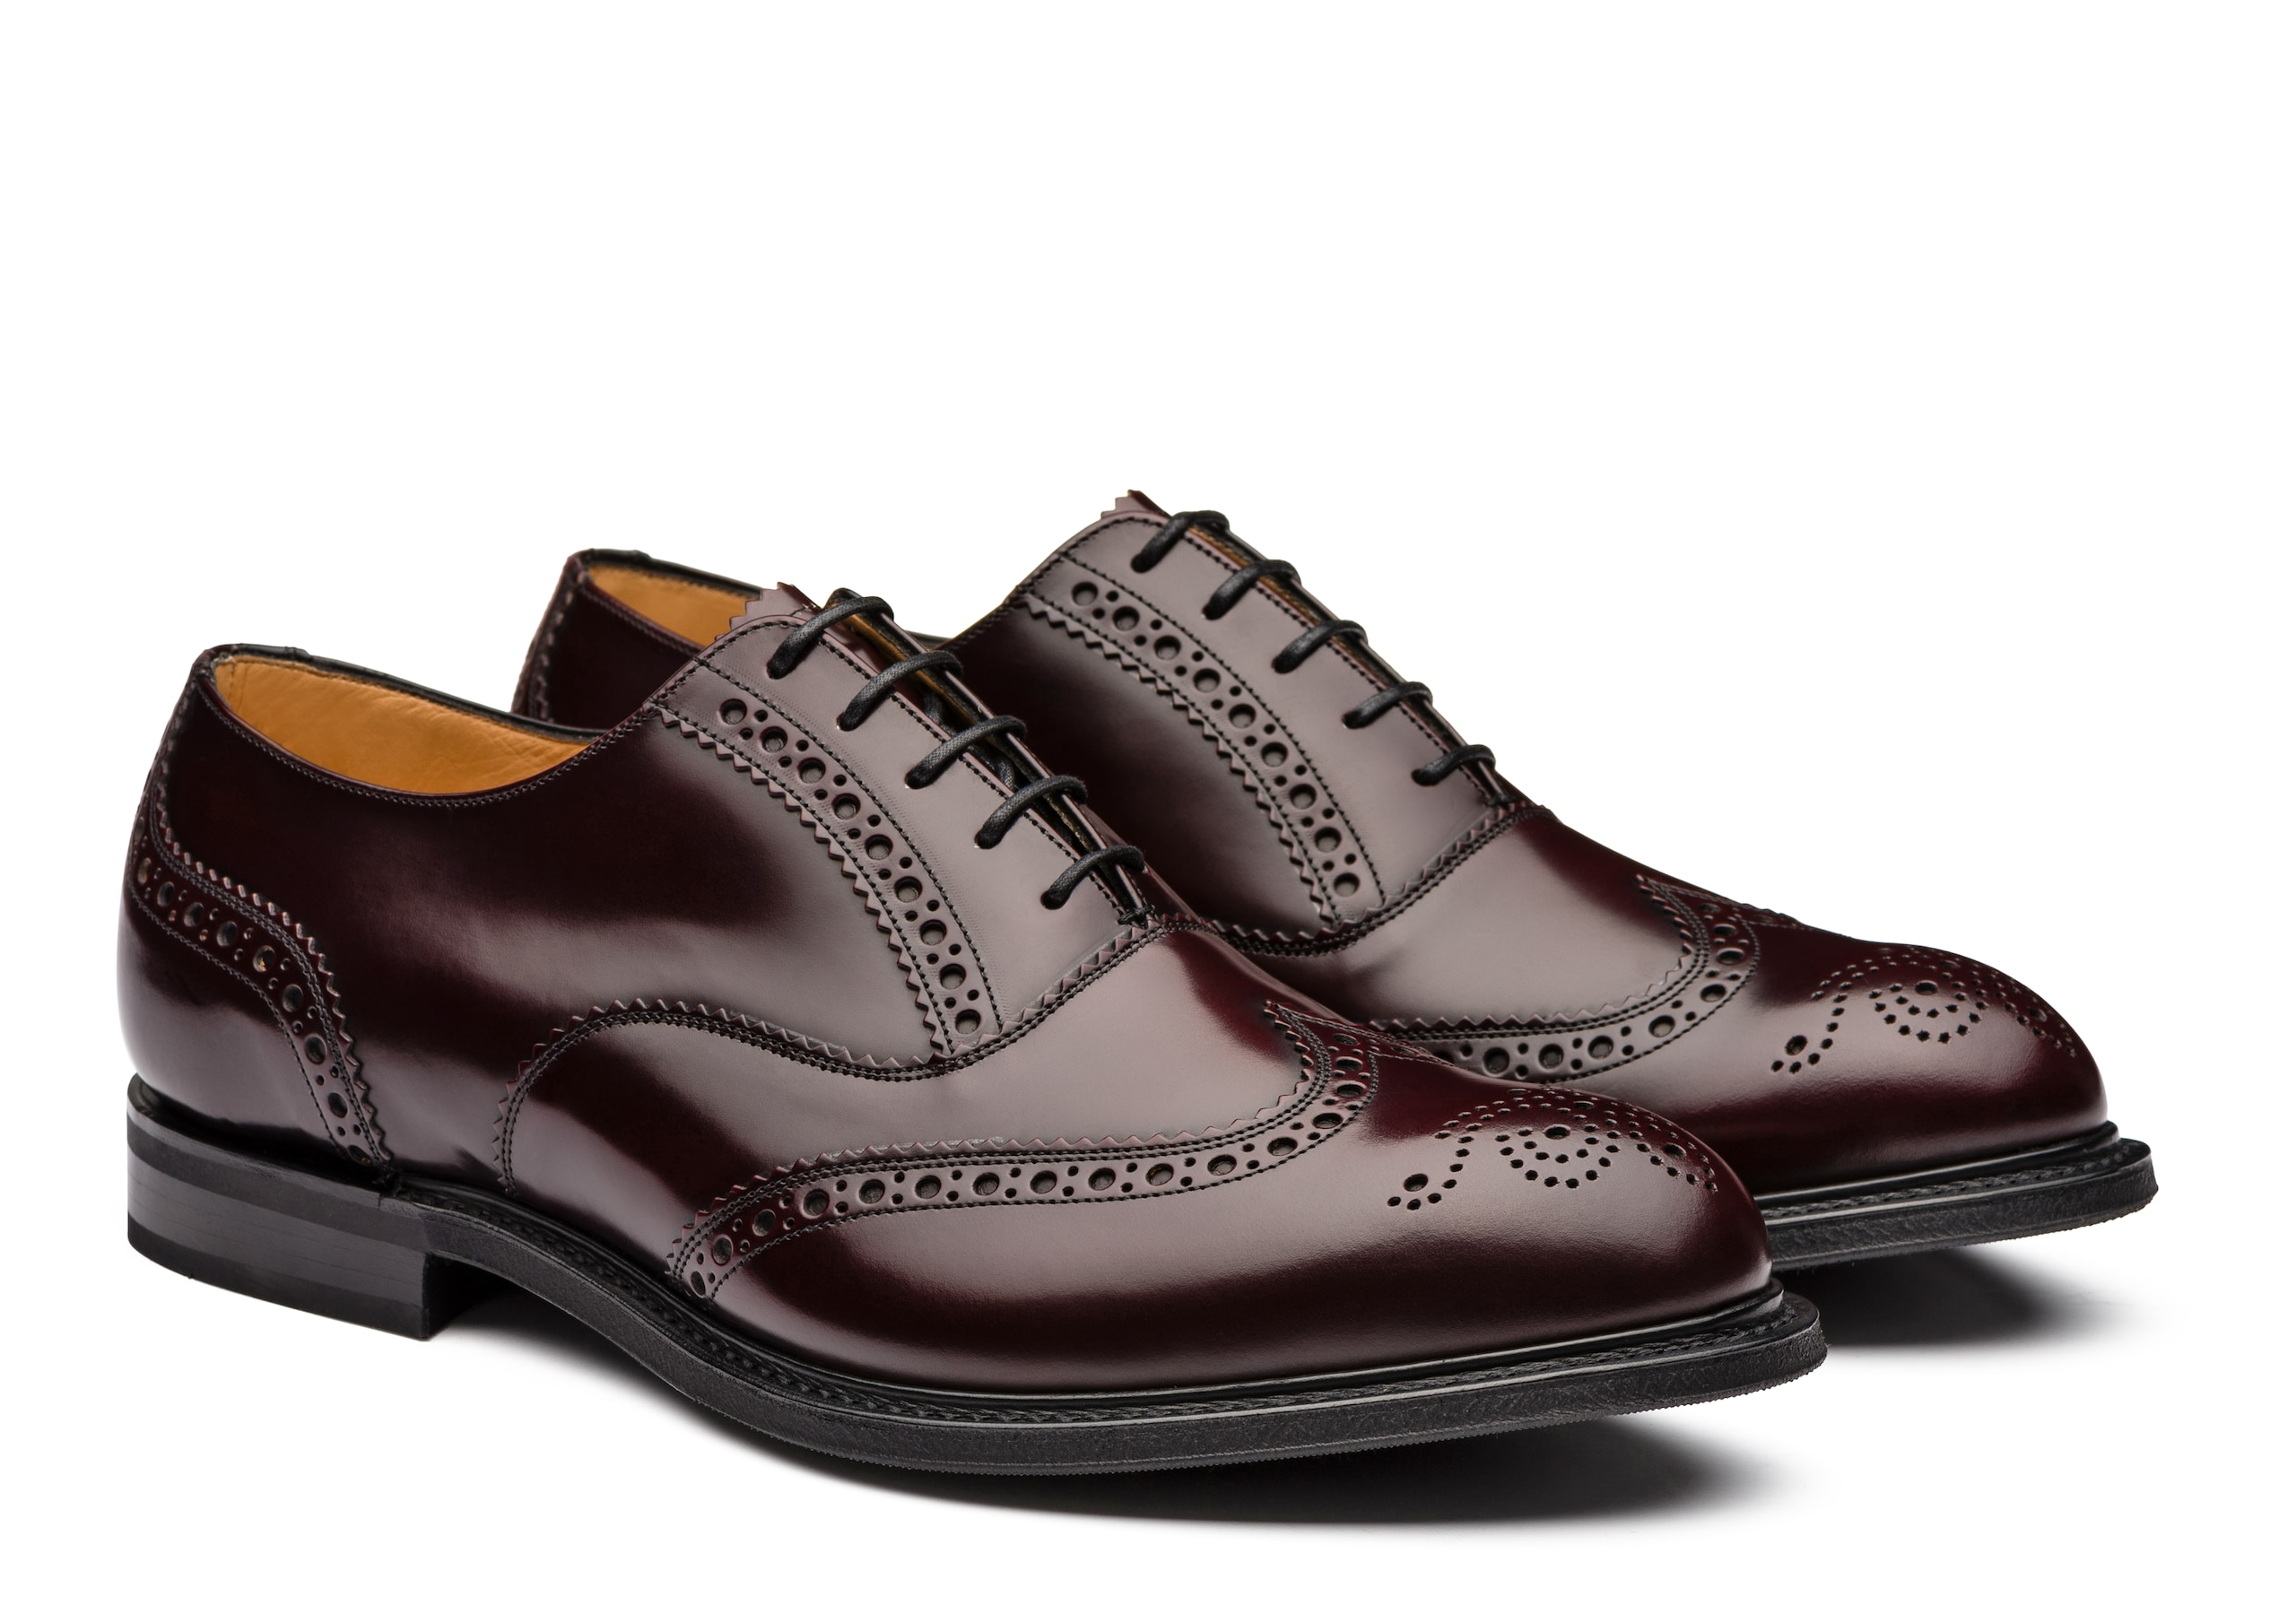 Wareham Church's Oxford Brogue in Pelle di Vitello Spazzolato Bordeaux